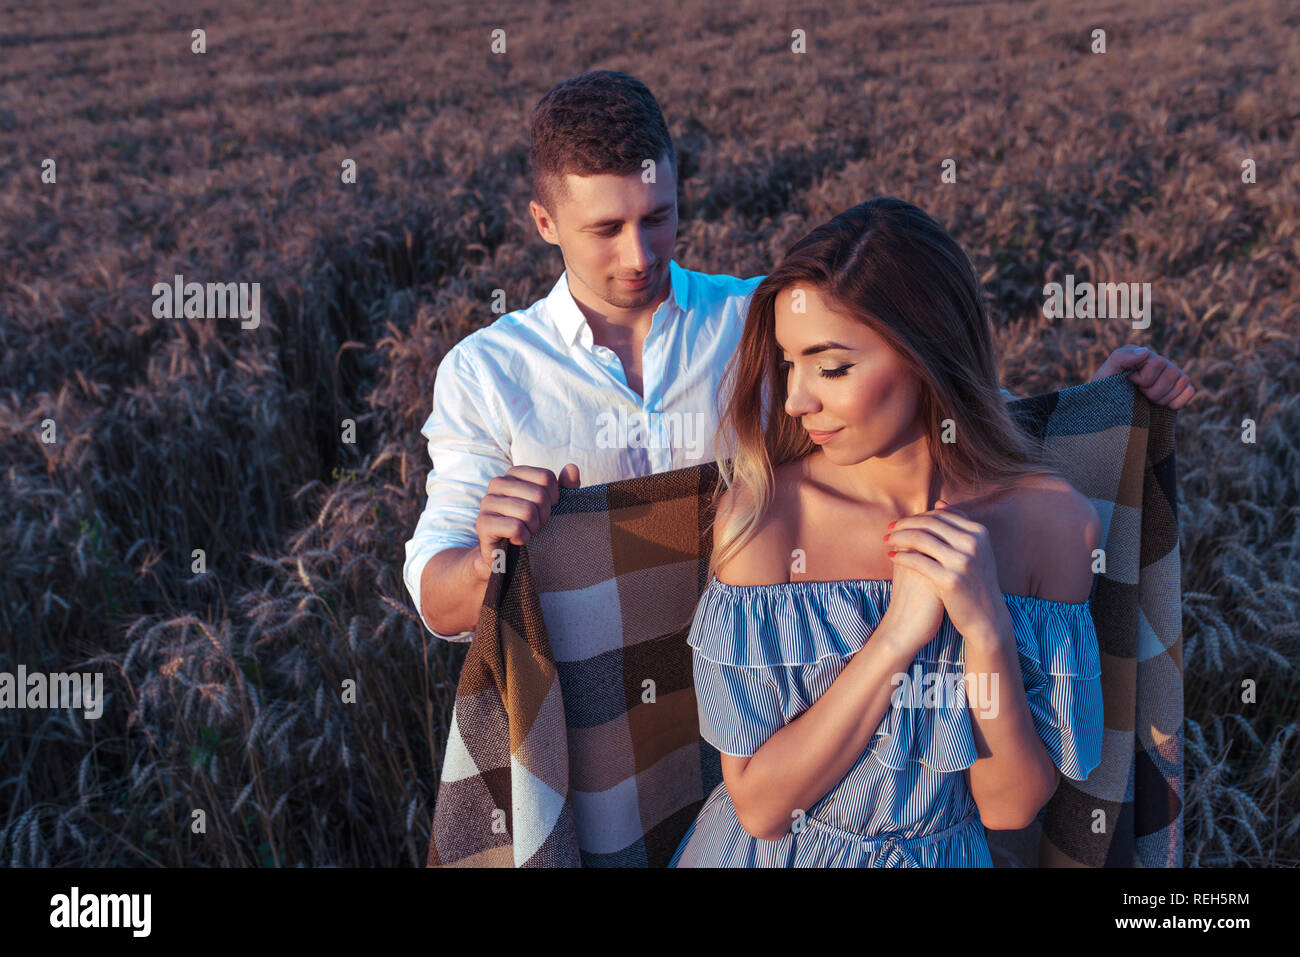 Young couple adult romantic family. Guy hides girl with a warm blanket, in evening it has cooled down. Concept of happiness, tenderness of caring for support of understanding and courting for spouse. - Stock Image